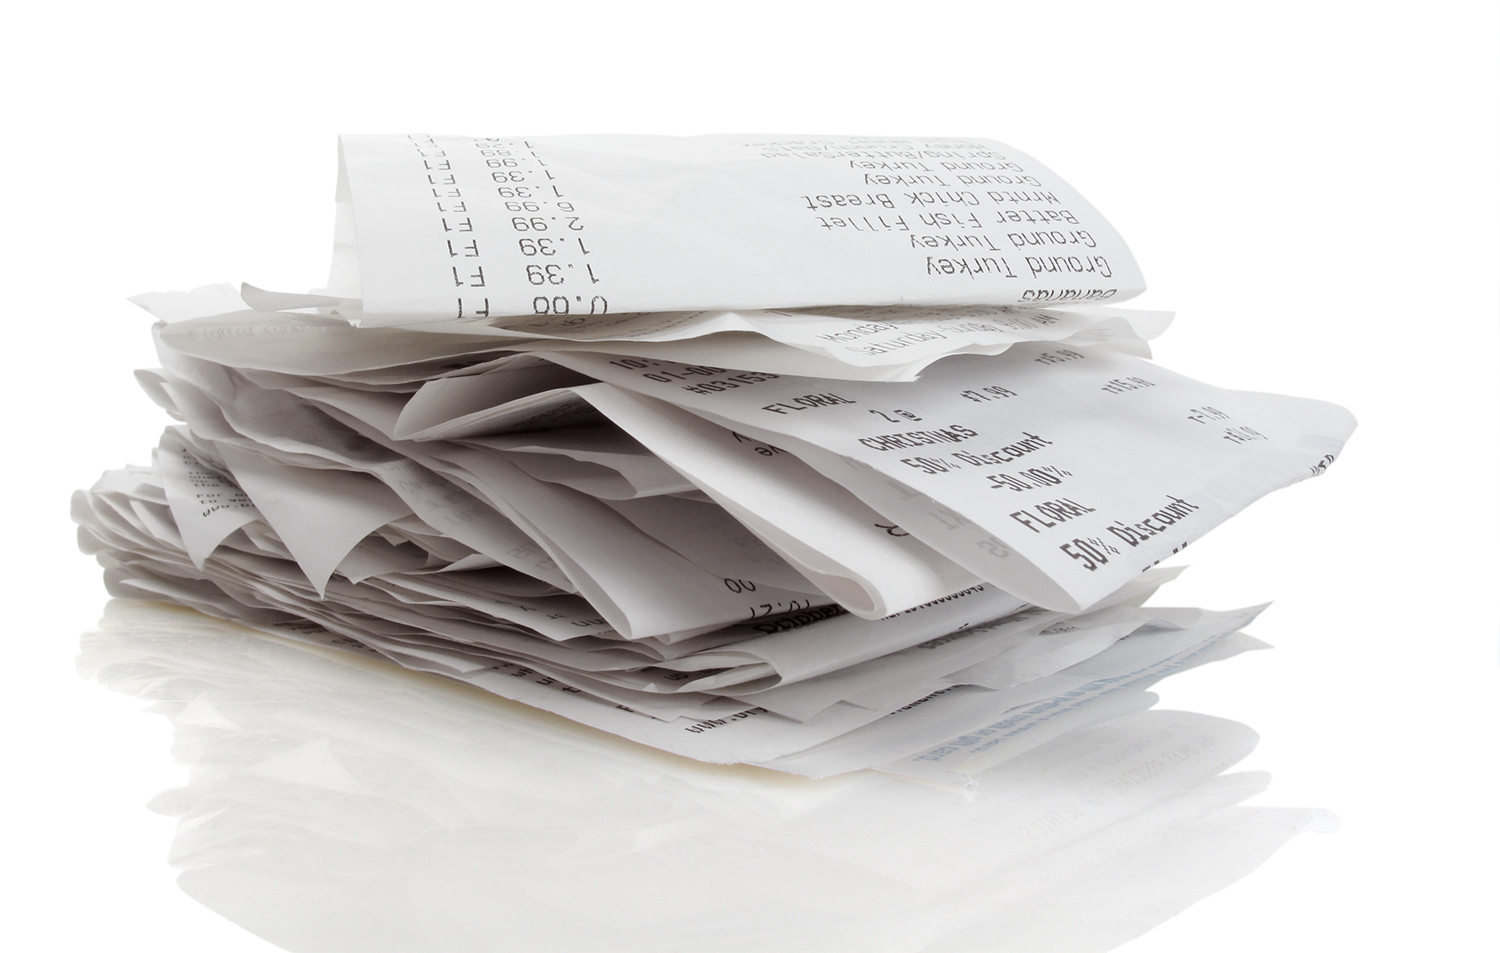 California wants to outlaw receipts!